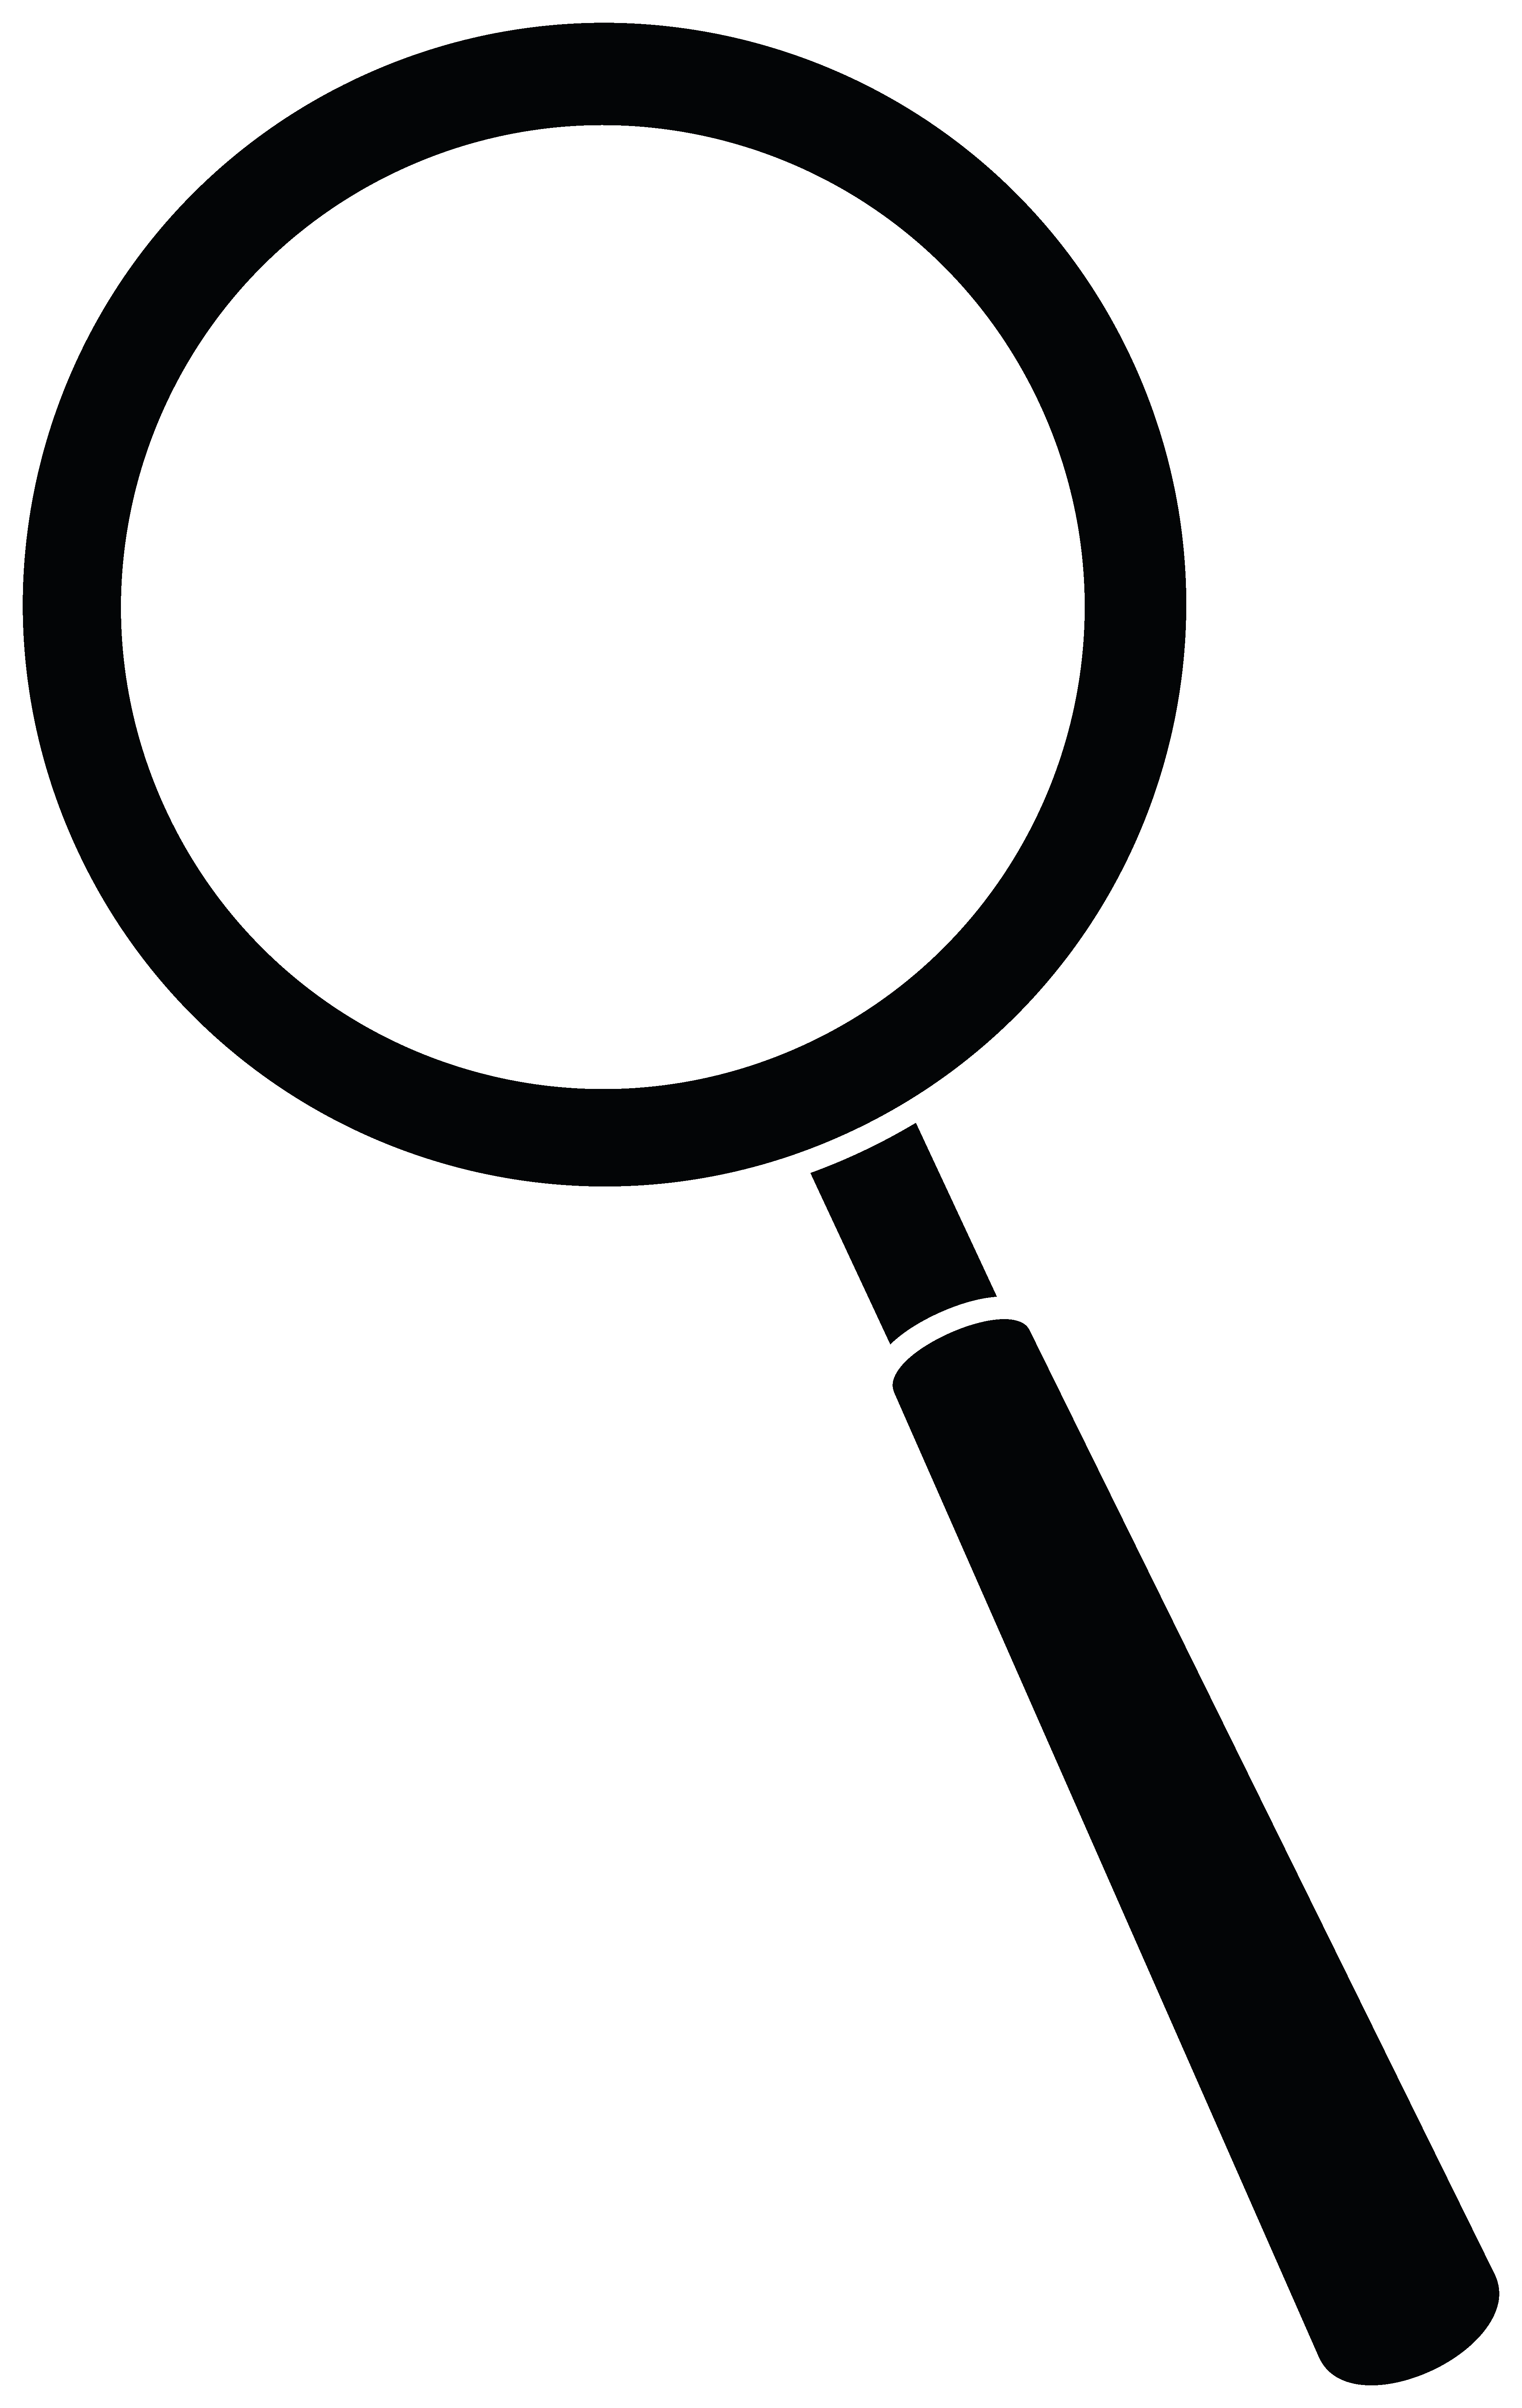 White lens clipart clipart library download Free Magnifying Lens Cliparts, Download Free Clip Art, Free ... clipart library download